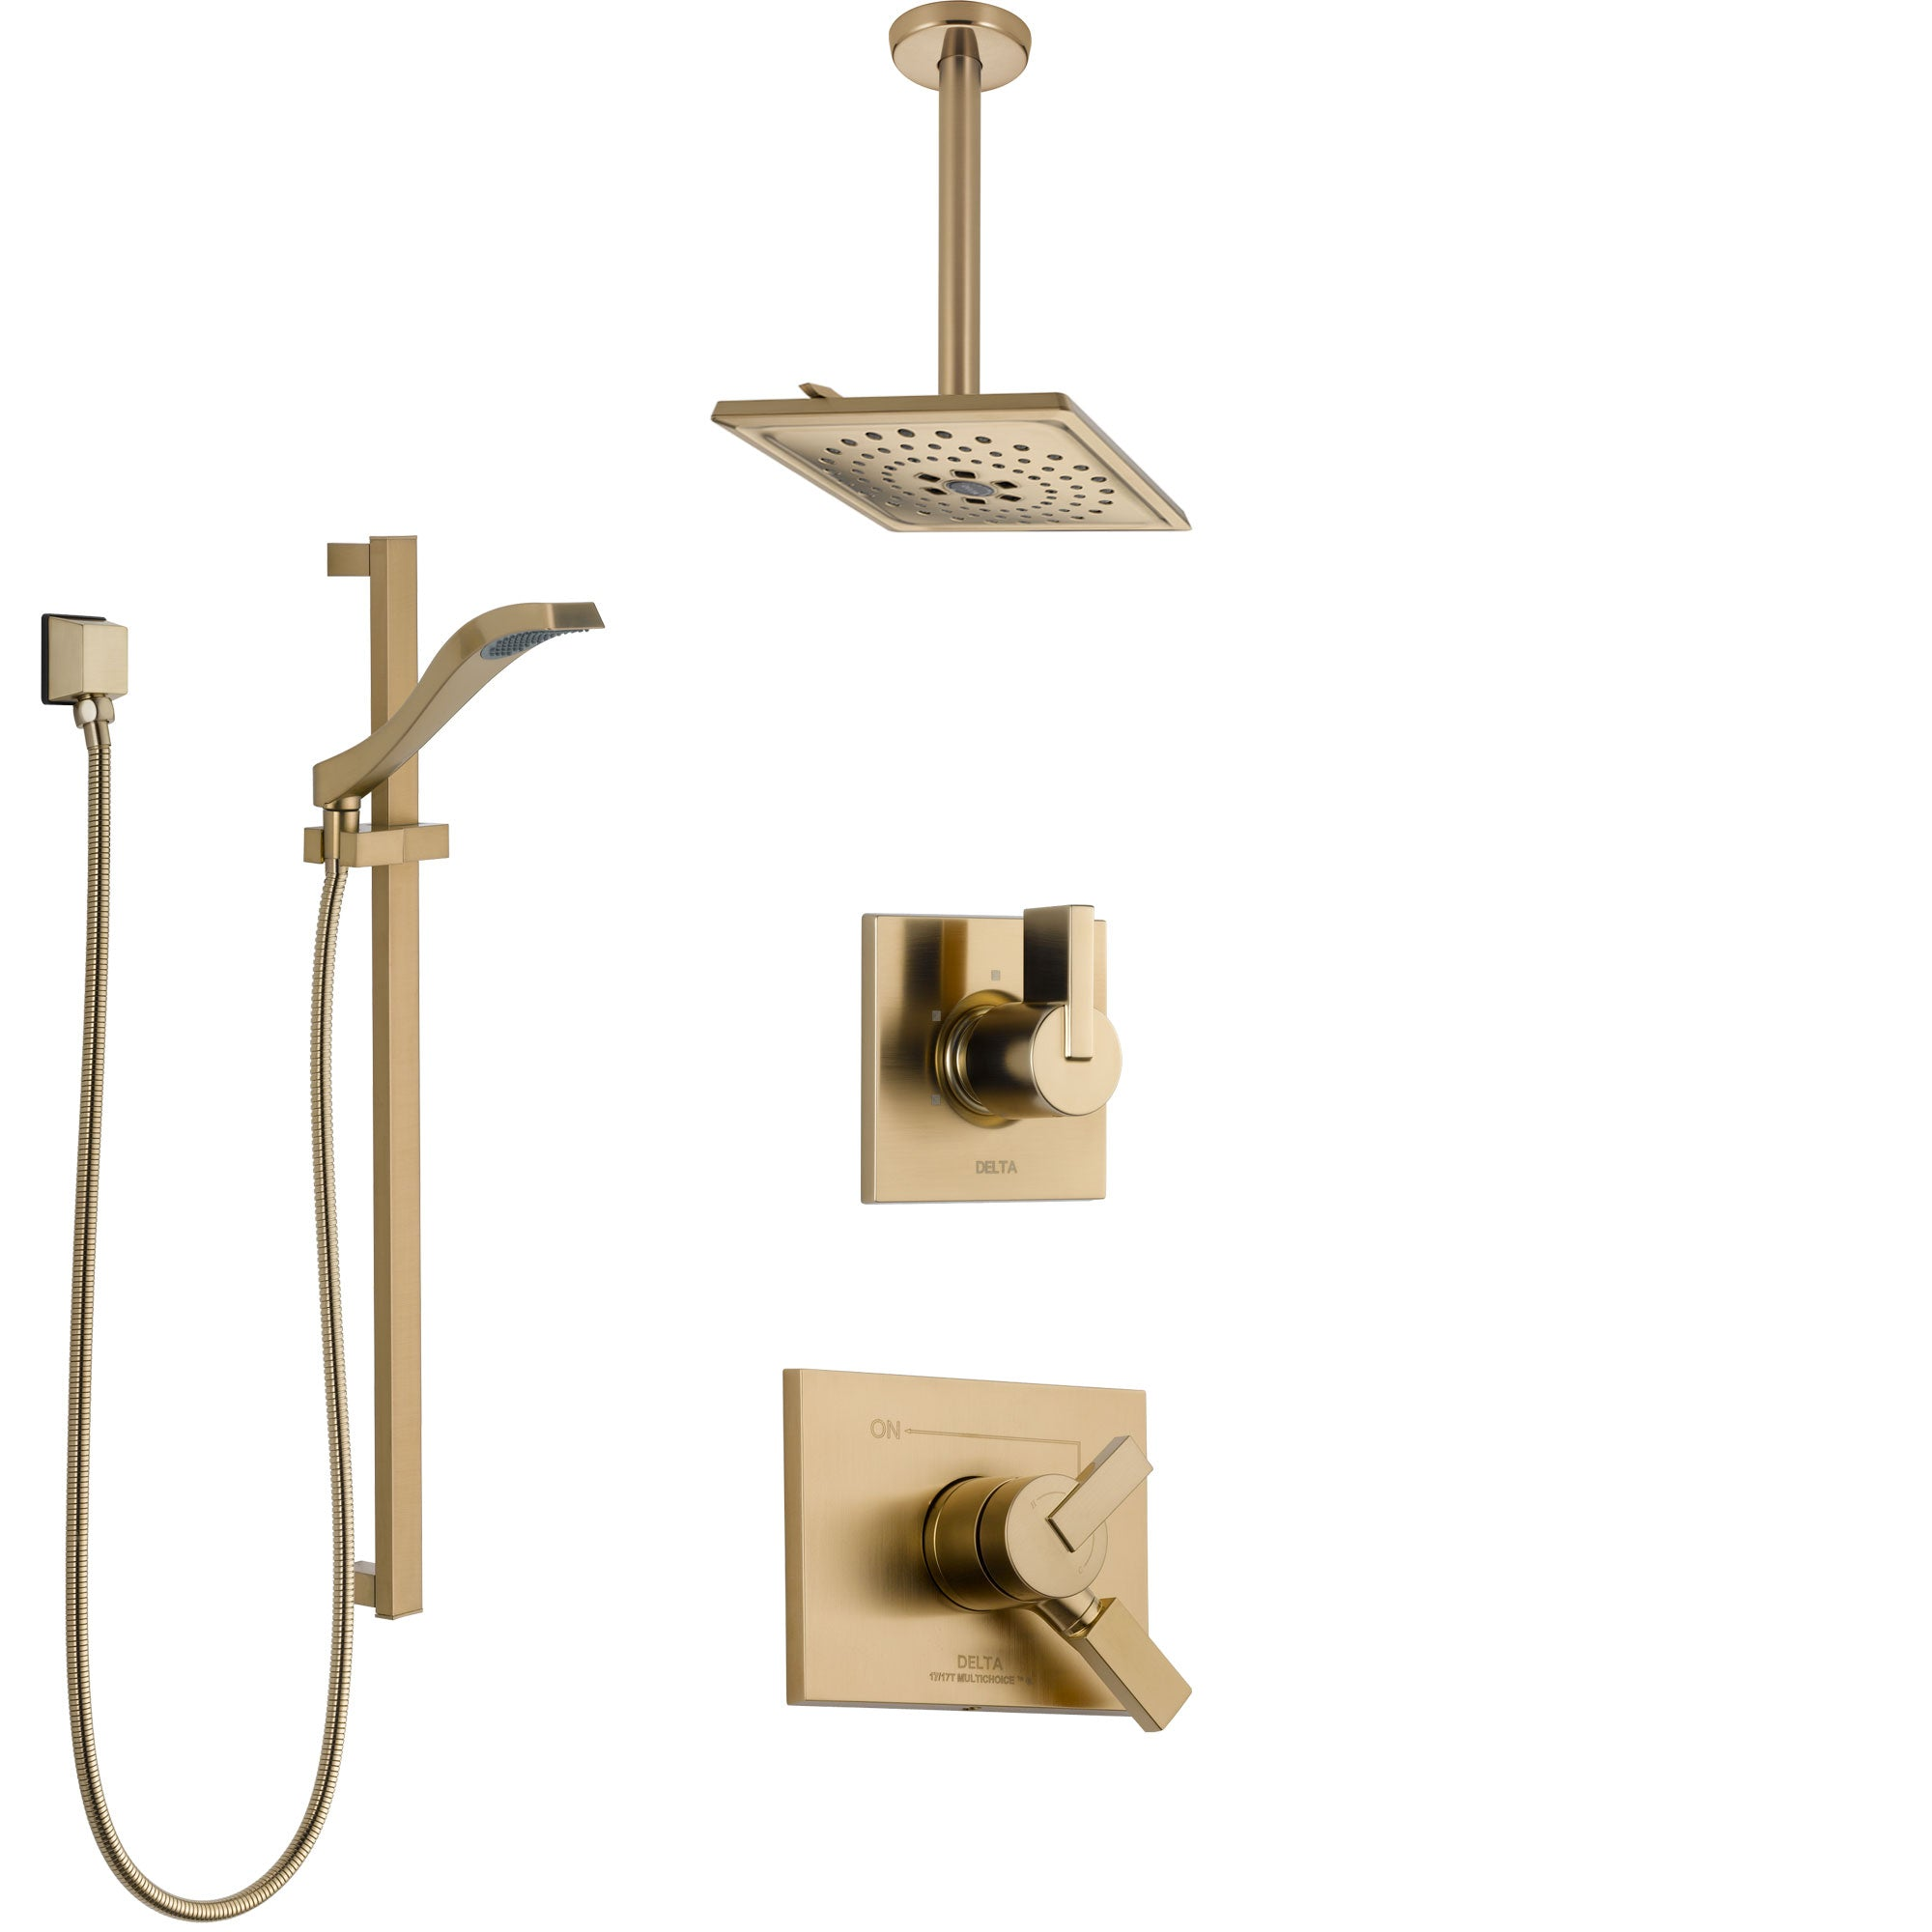 Delta Vero Champagne Bronze Shower System with Dual Control Handle, Diverter, Ceiling Mount Showerhead, and Hand Shower with Slidebar SS1753CZ1